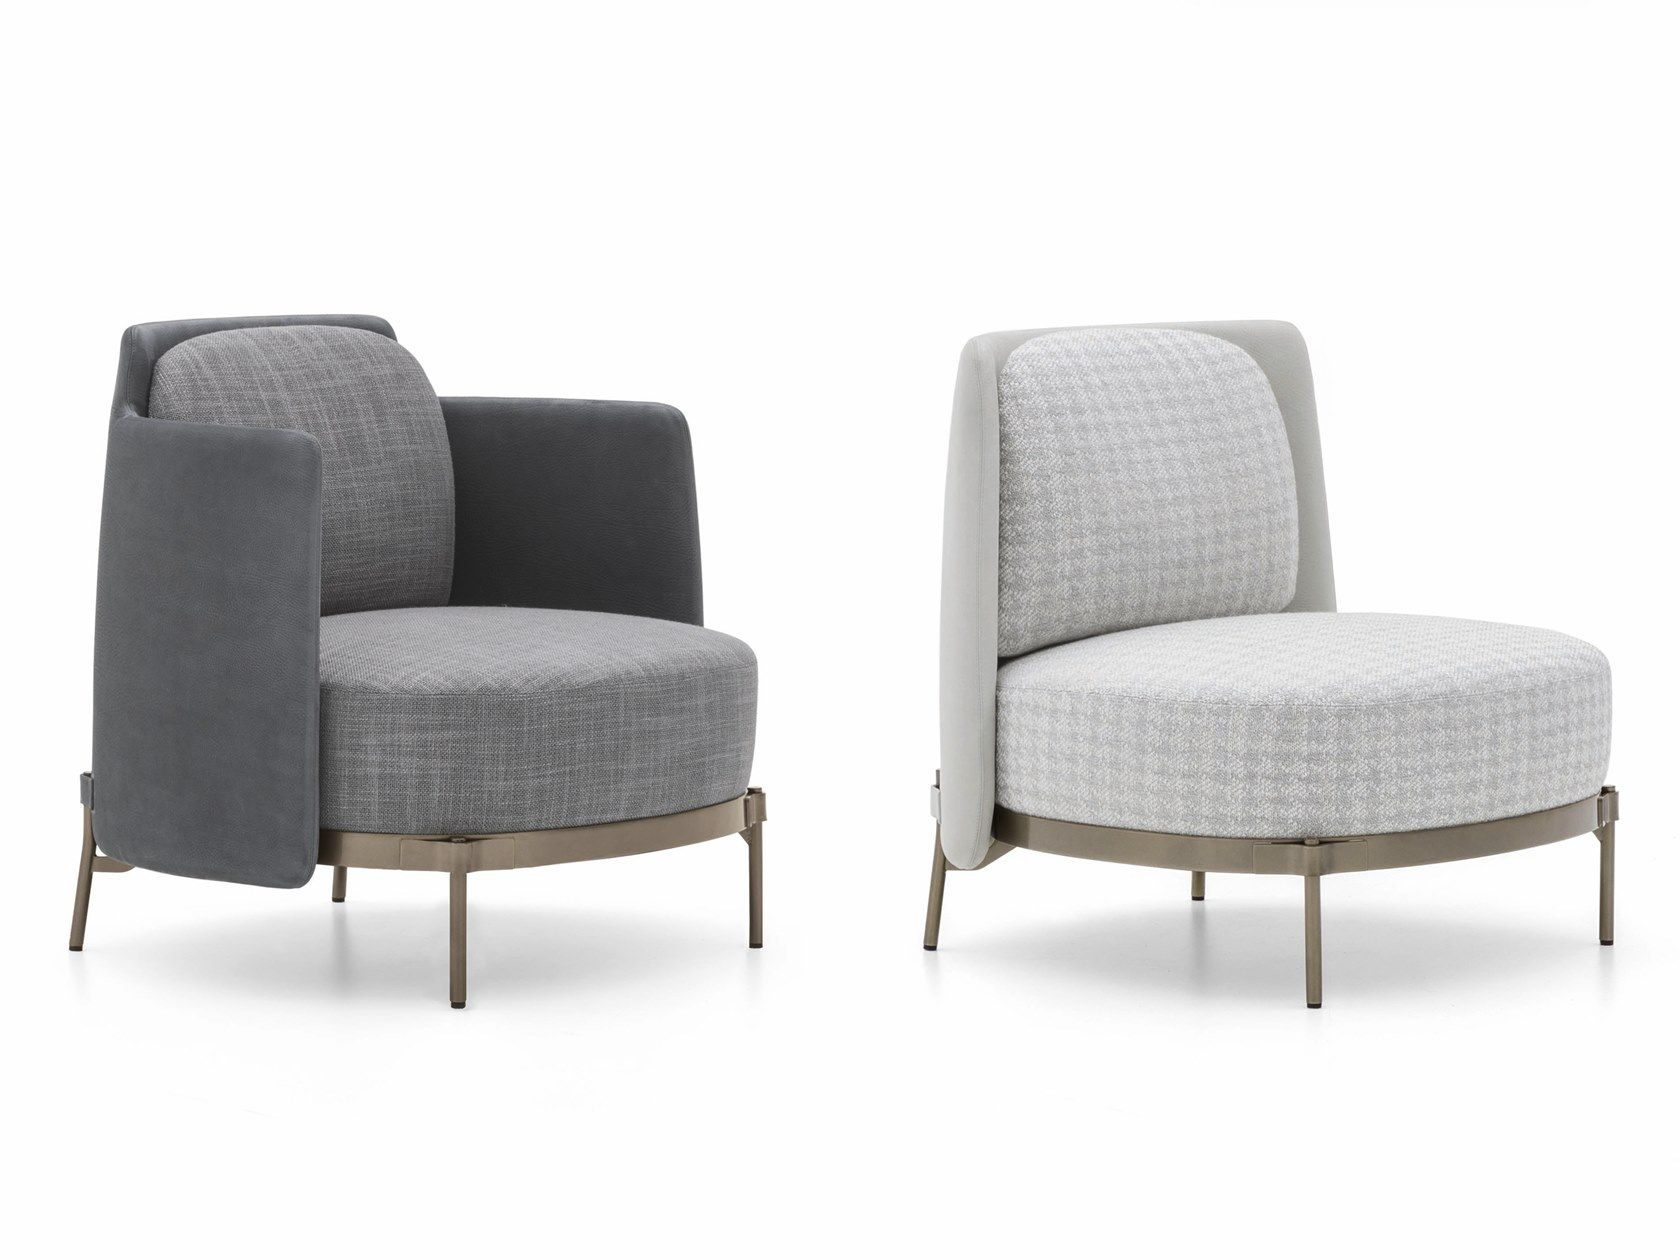 Tape Armchair Tape Collection By Minotti Design Nendo In 2020